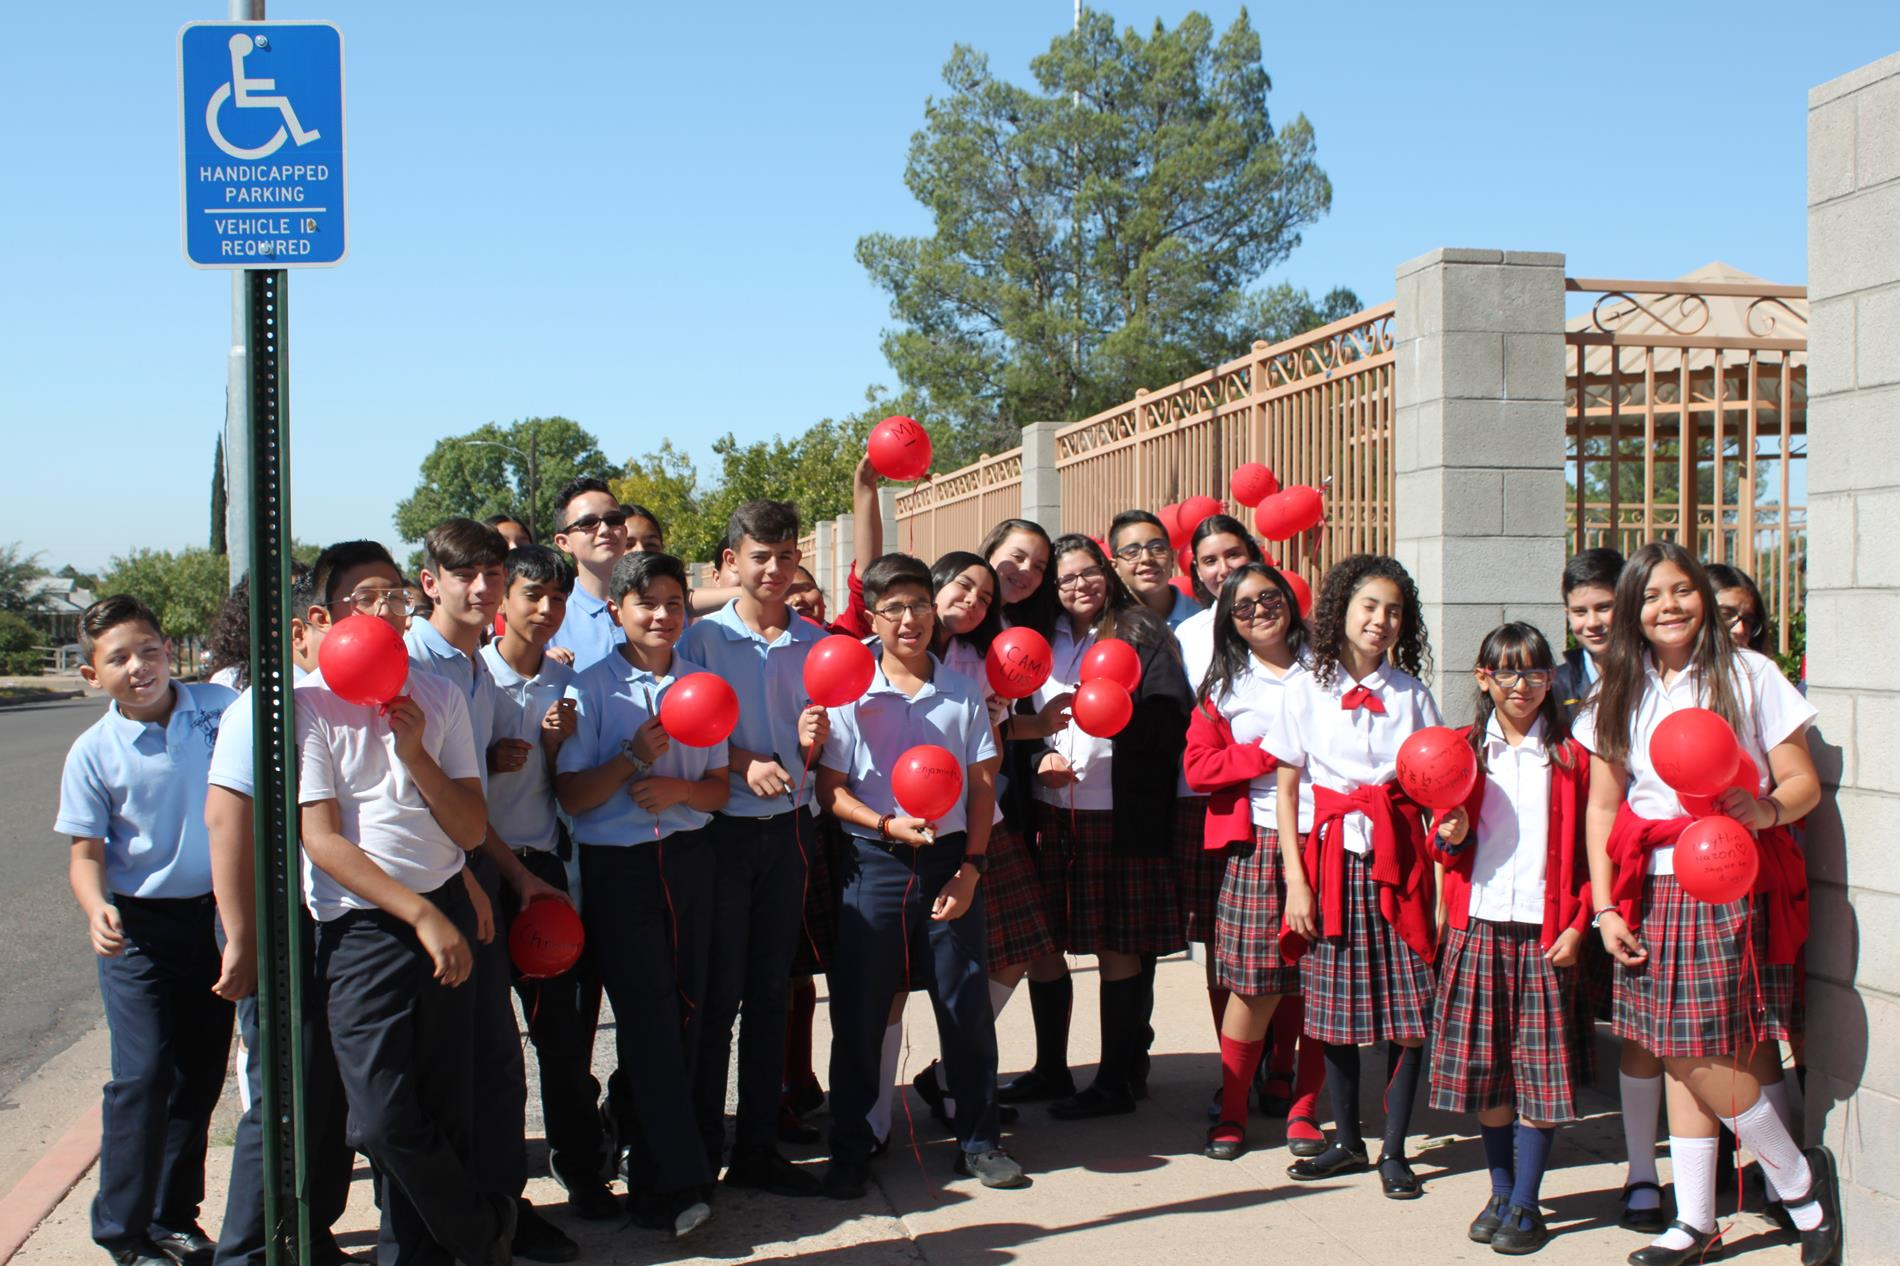 Students with their balloons